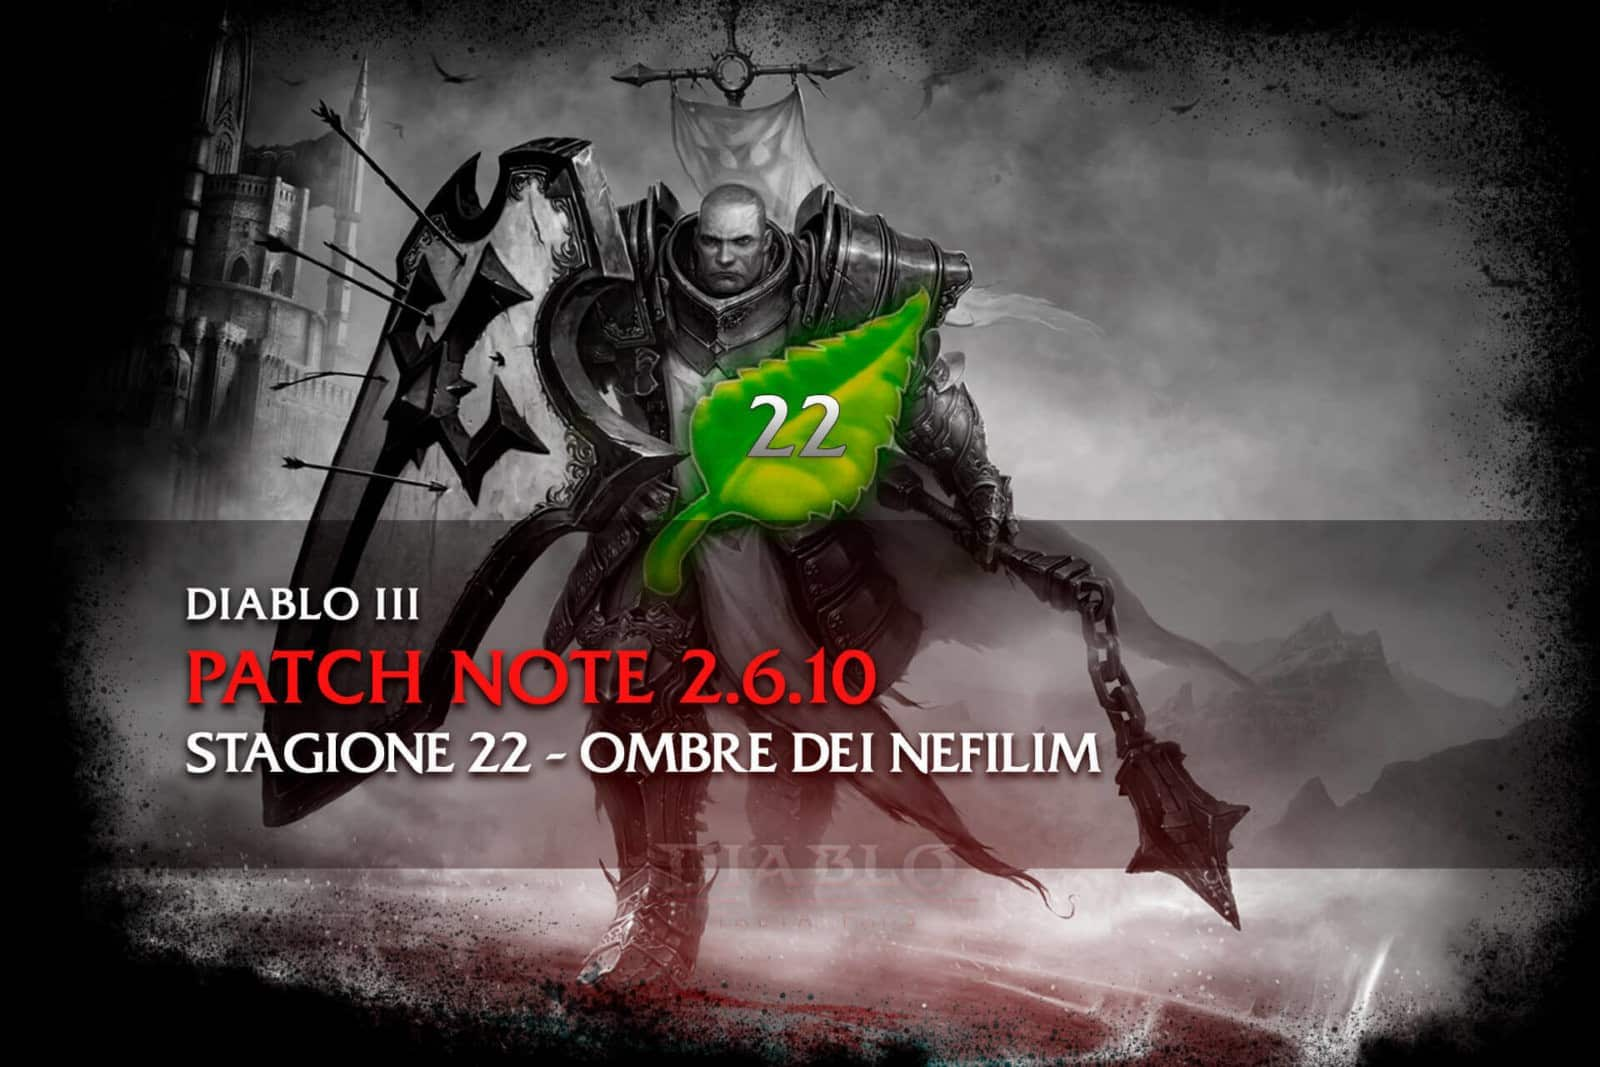 Diablo 3 - Patch note 2.6.10